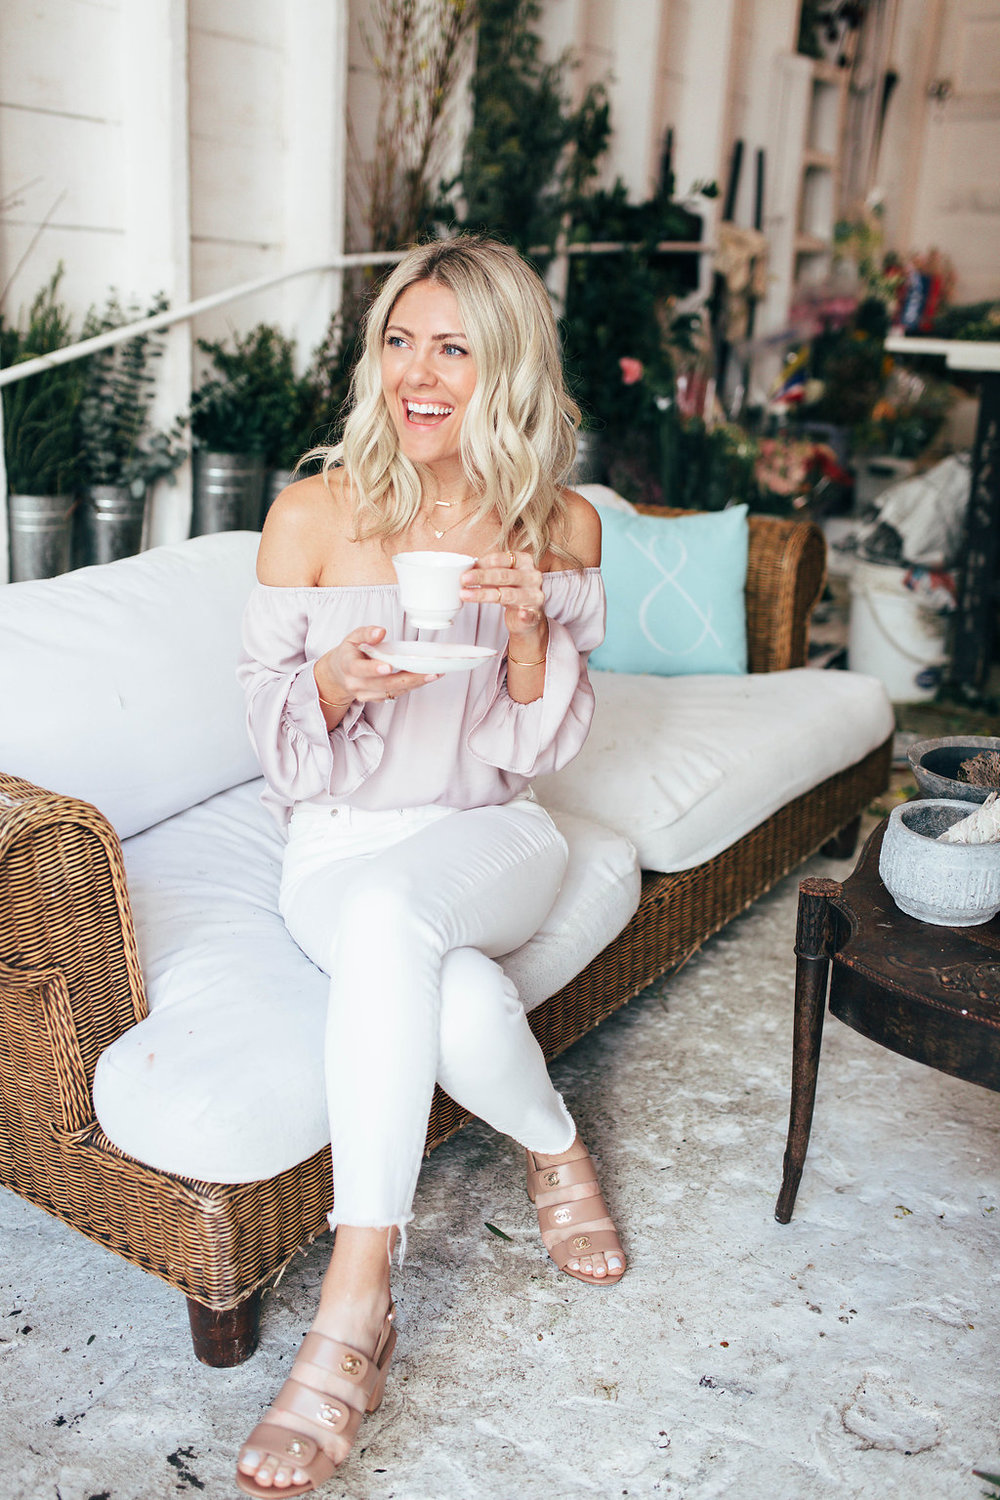 Katie Dean - Katie Dean is a jewelry designer of her eponymous line, Katie Dean Jewelry; a dainty, feminine line of jewels which is all handmade in Los Angeles. She's recently relocated to the Bay Area and loves pilates, her morning lattes and traveling.